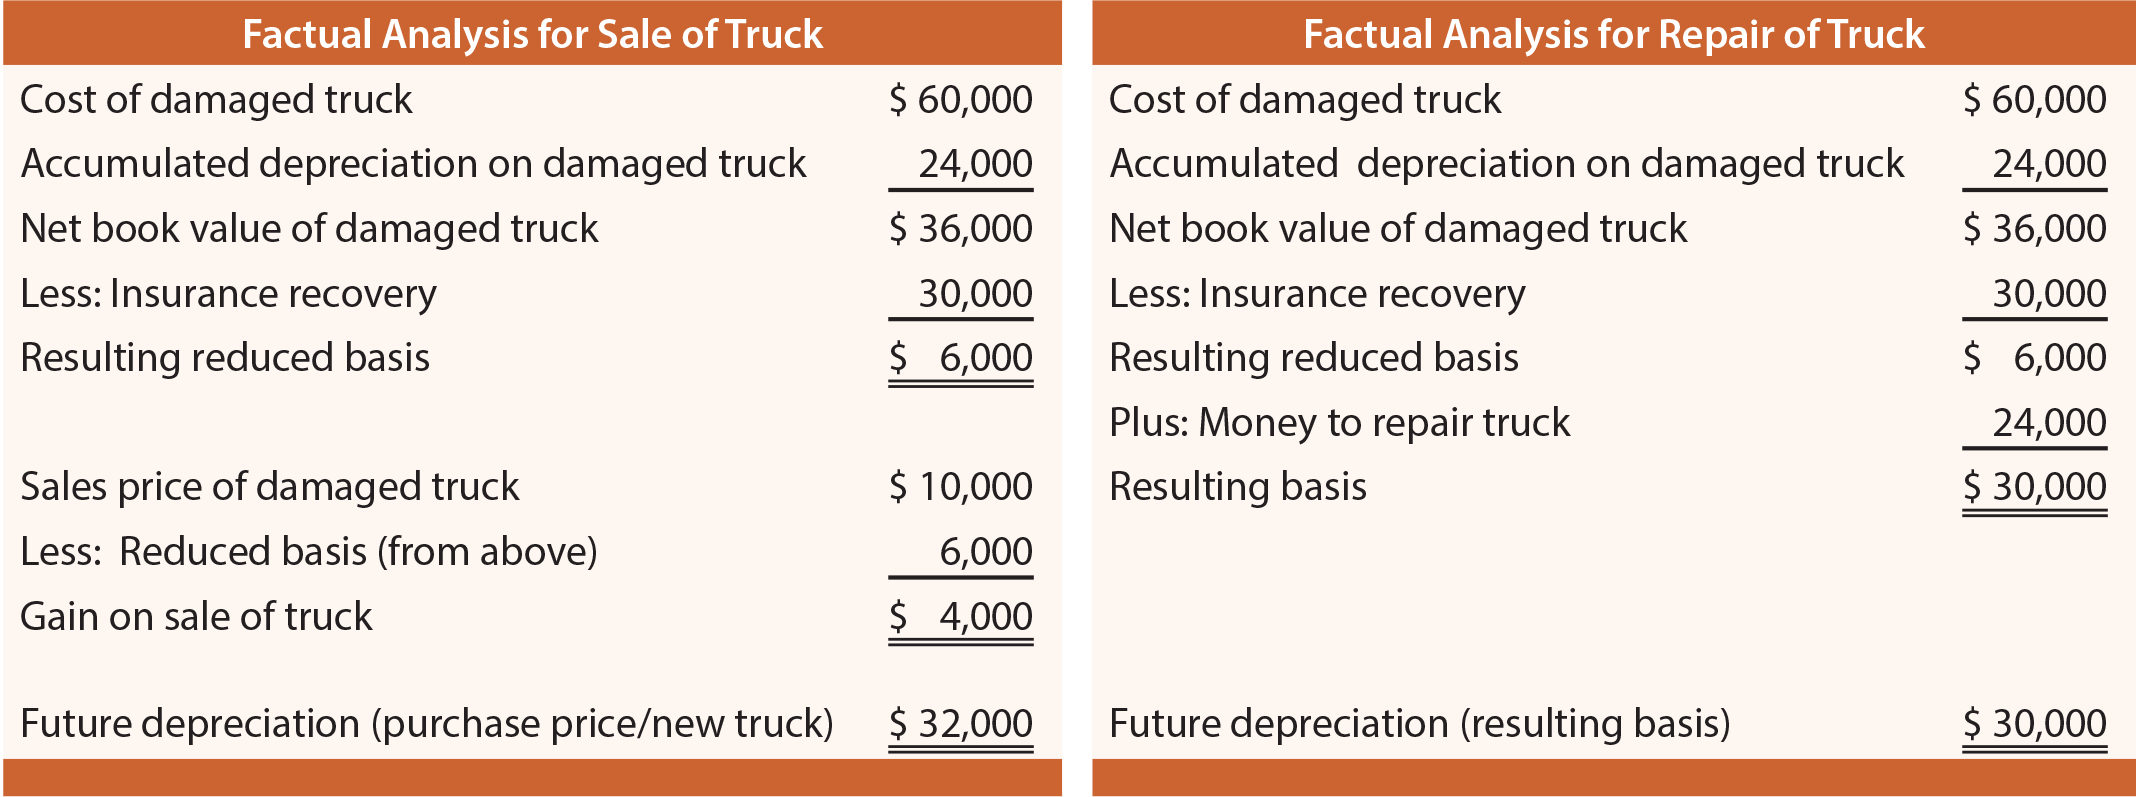 Factual Analysis of Truck